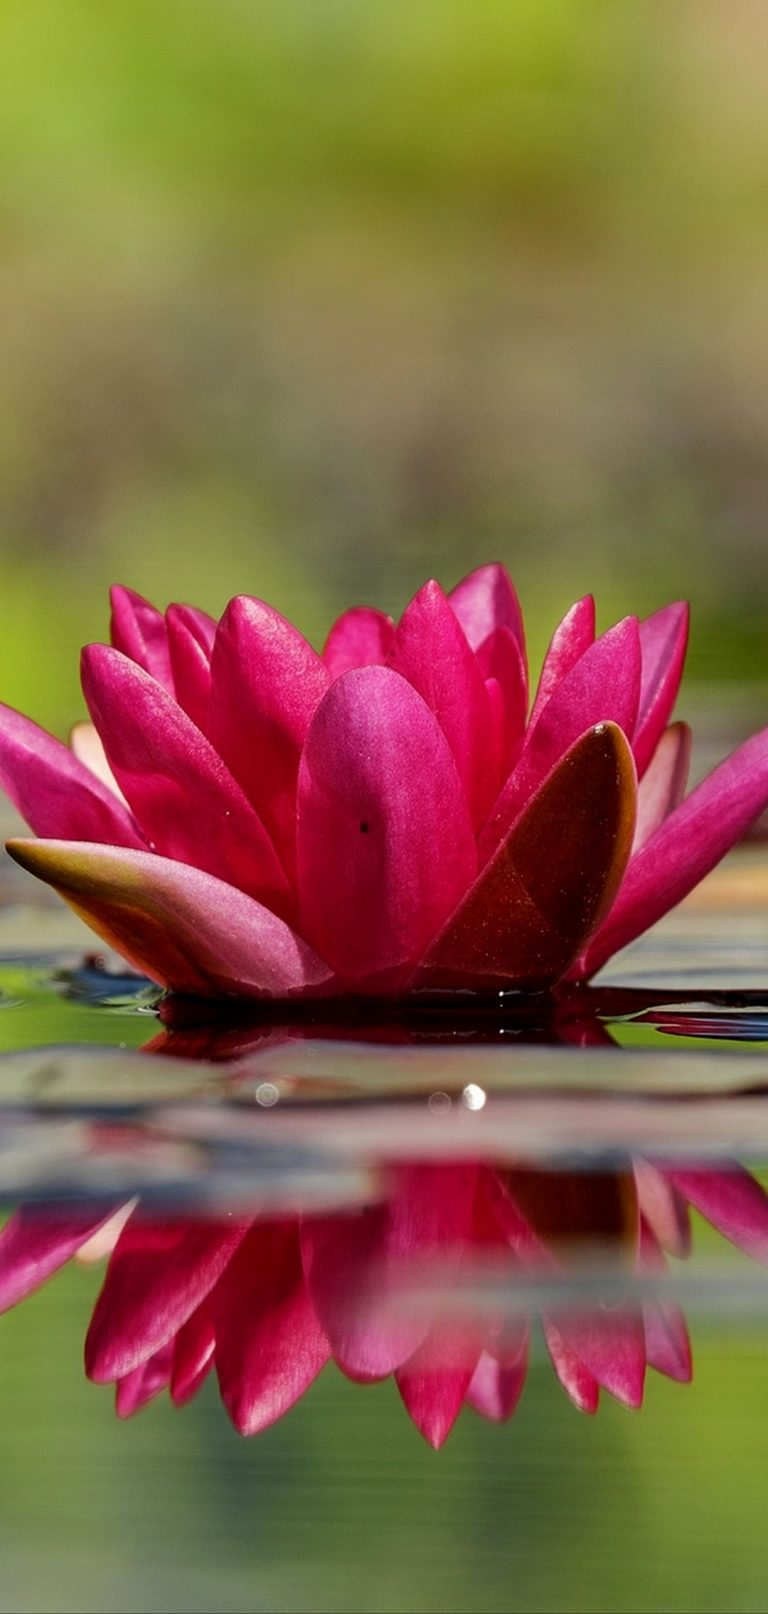 Waterlily Flower Petals Water 1080x2270 768x1614